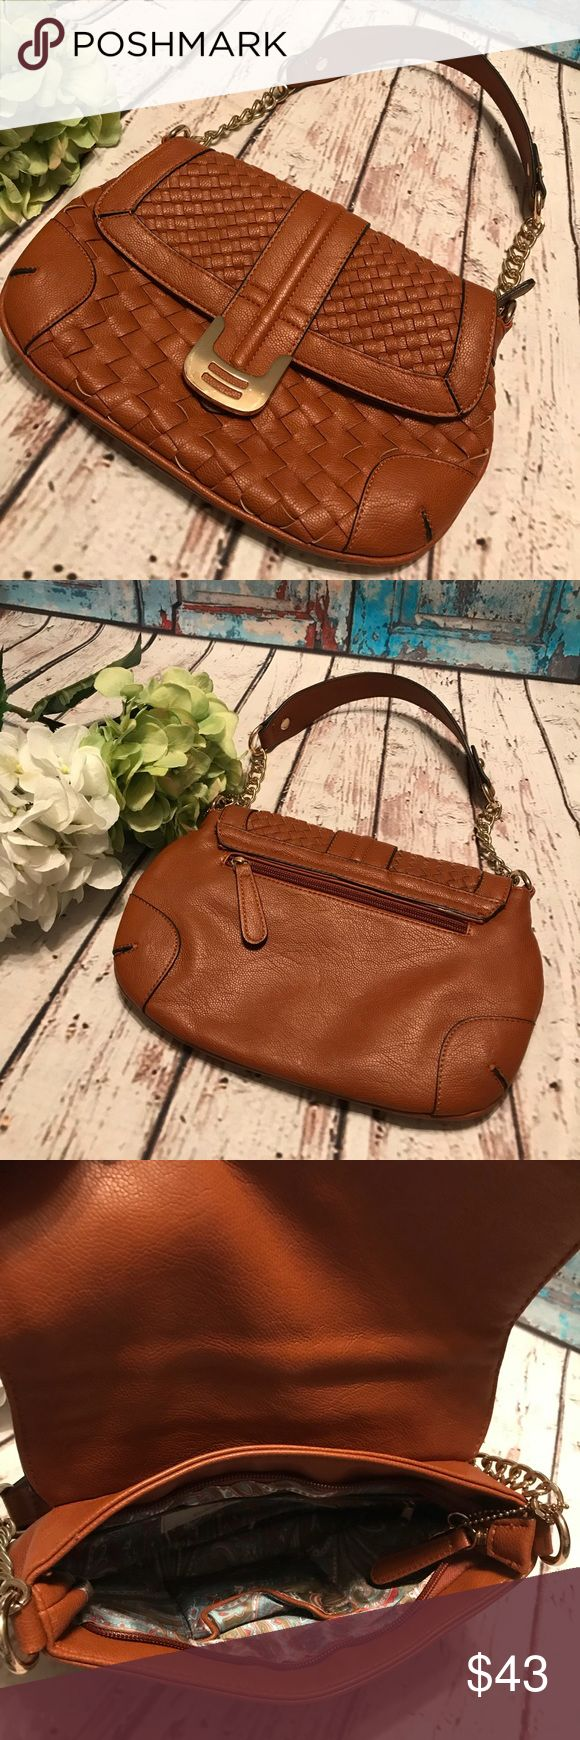 Big Buddha Brown Weave Purse Big Buddha Brown Weave Purse Gently Loved  Small Handbag One inside zippered pocket Snapping fold over closure Lovely silky liner Gorgeous & Chic❤️ Big Buddha Bags